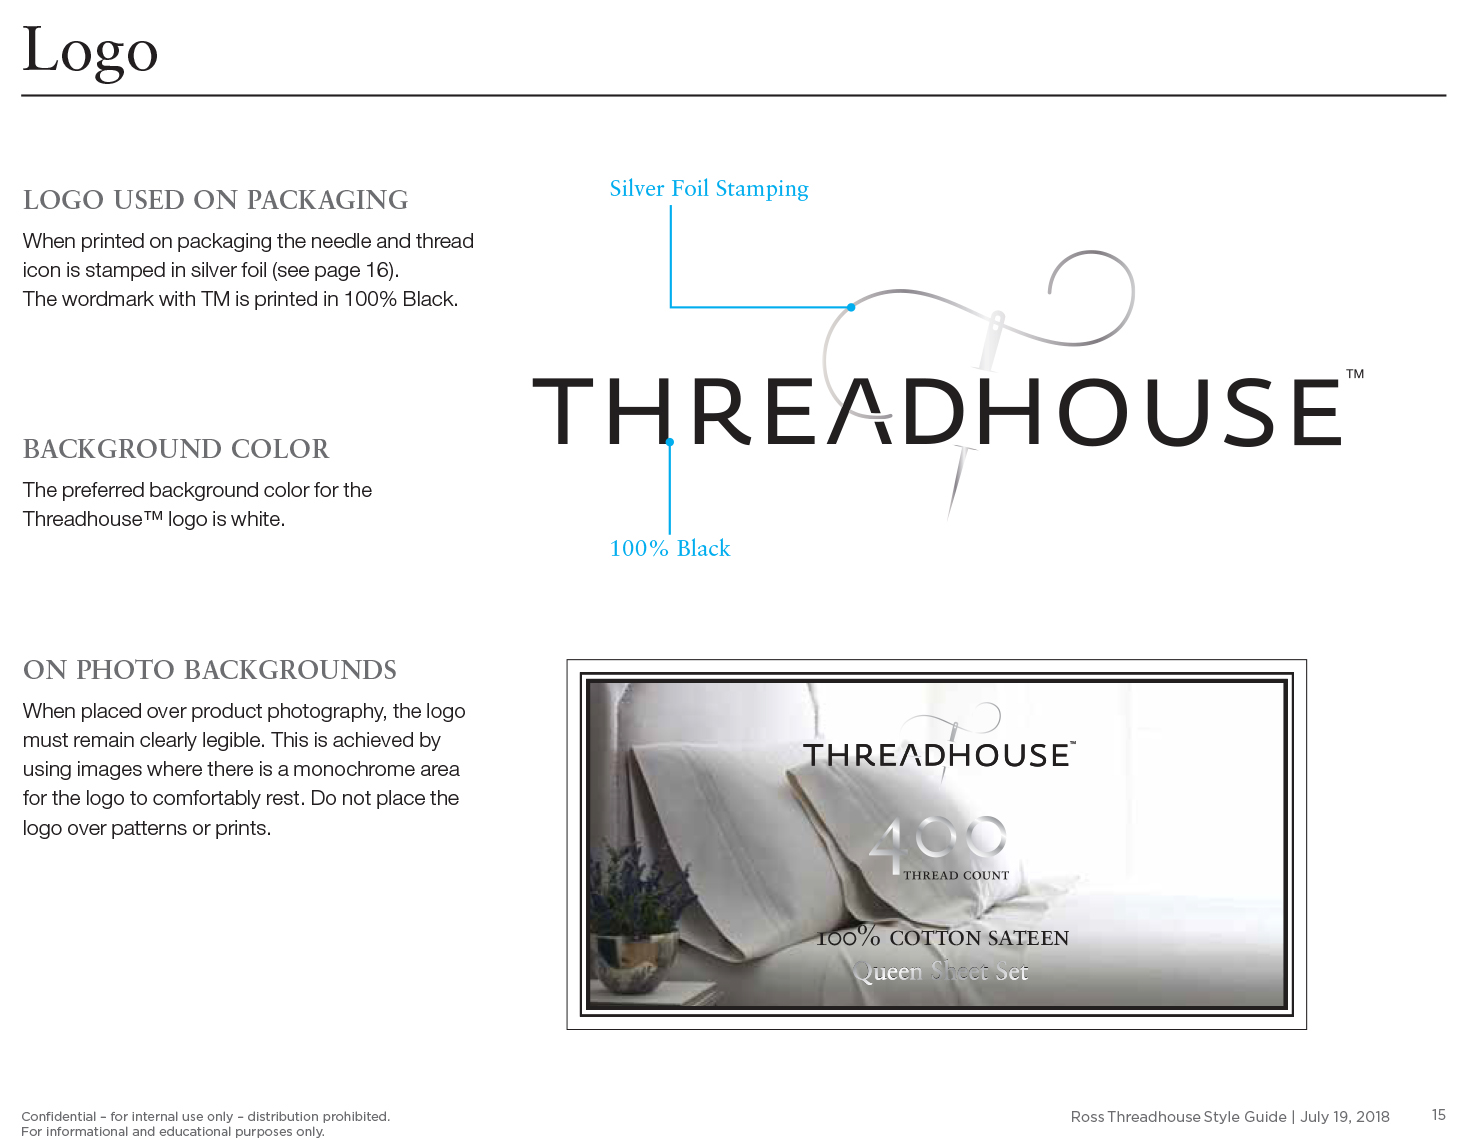 Threadhouse_Style Guide_2.jpg